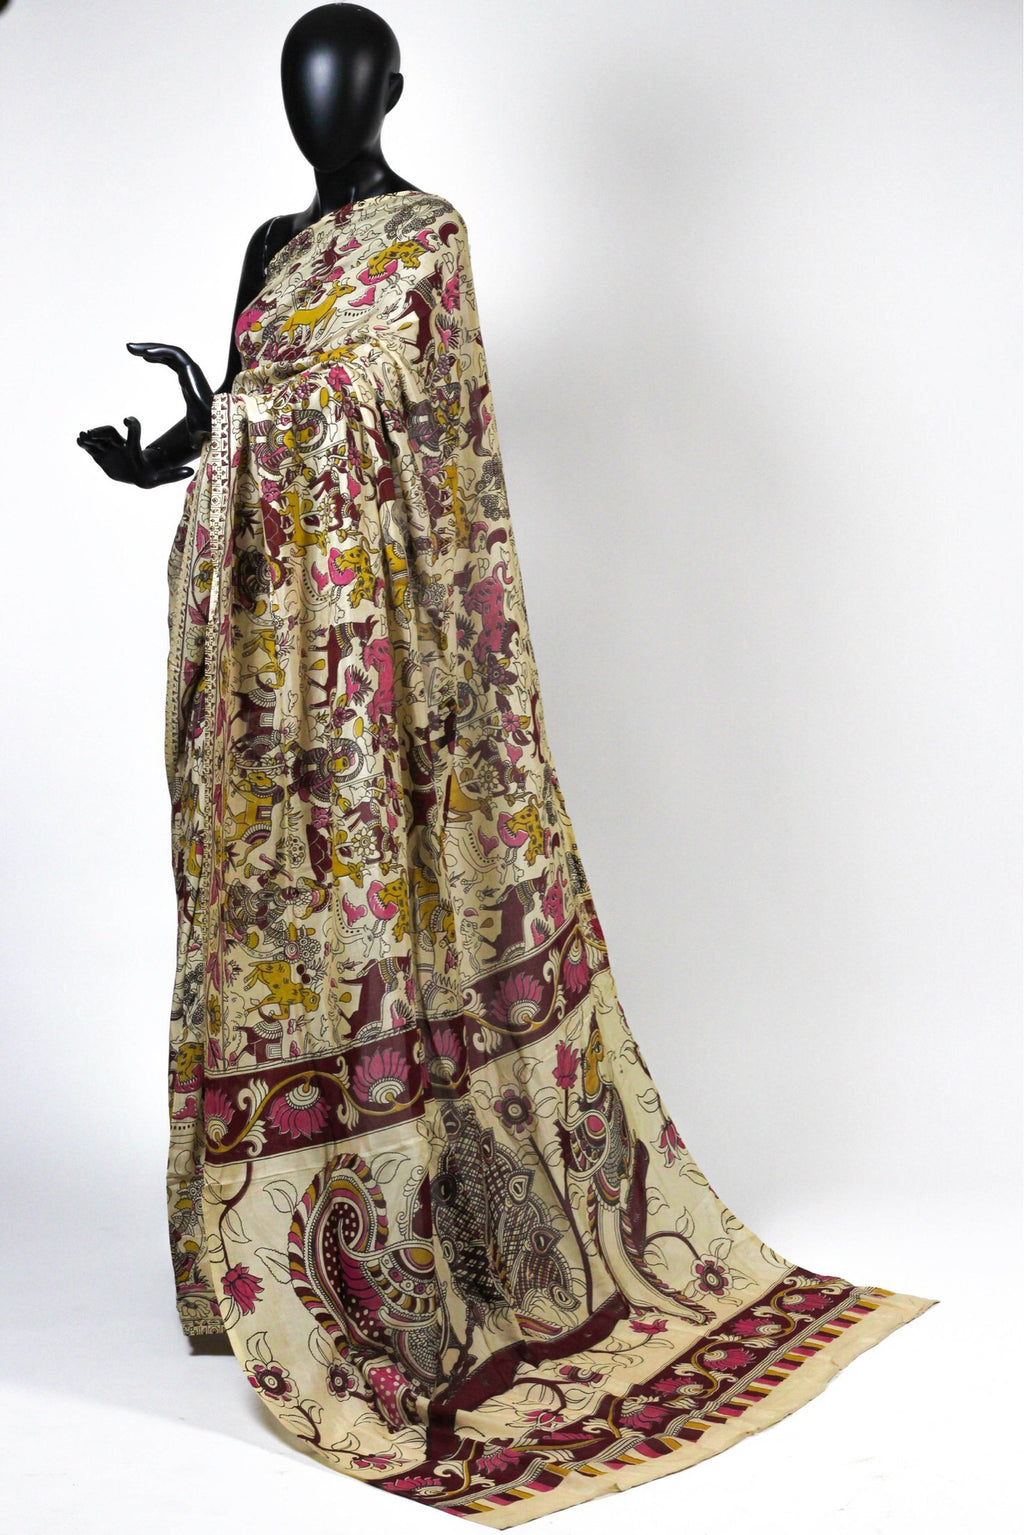 The Madhubani saree